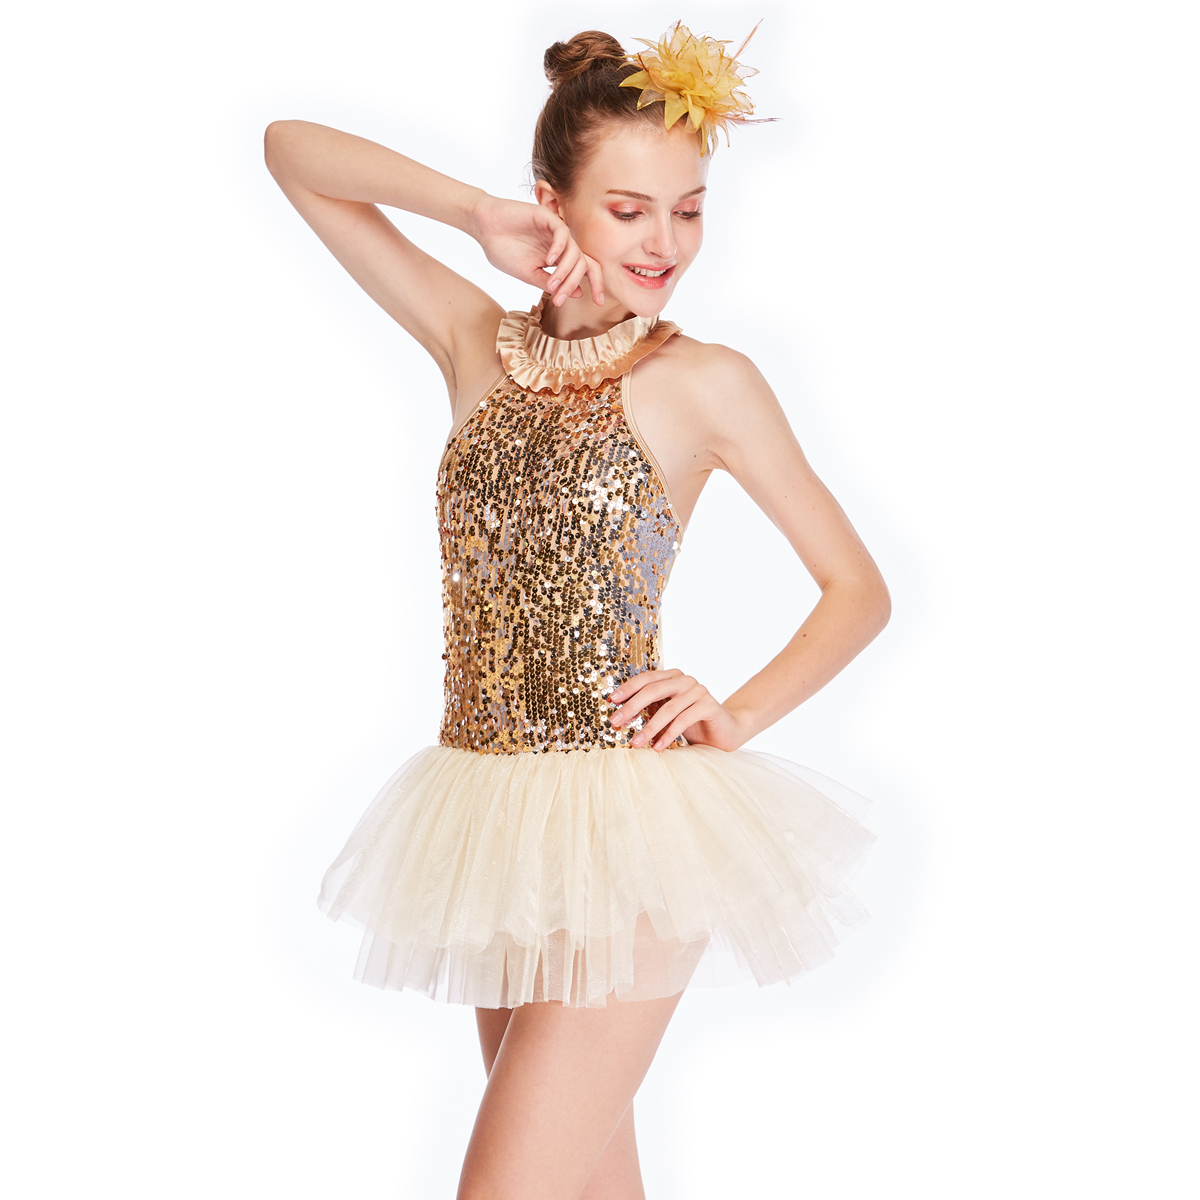 MIDEE tires ballet dresses for adults bulk production Stage-2